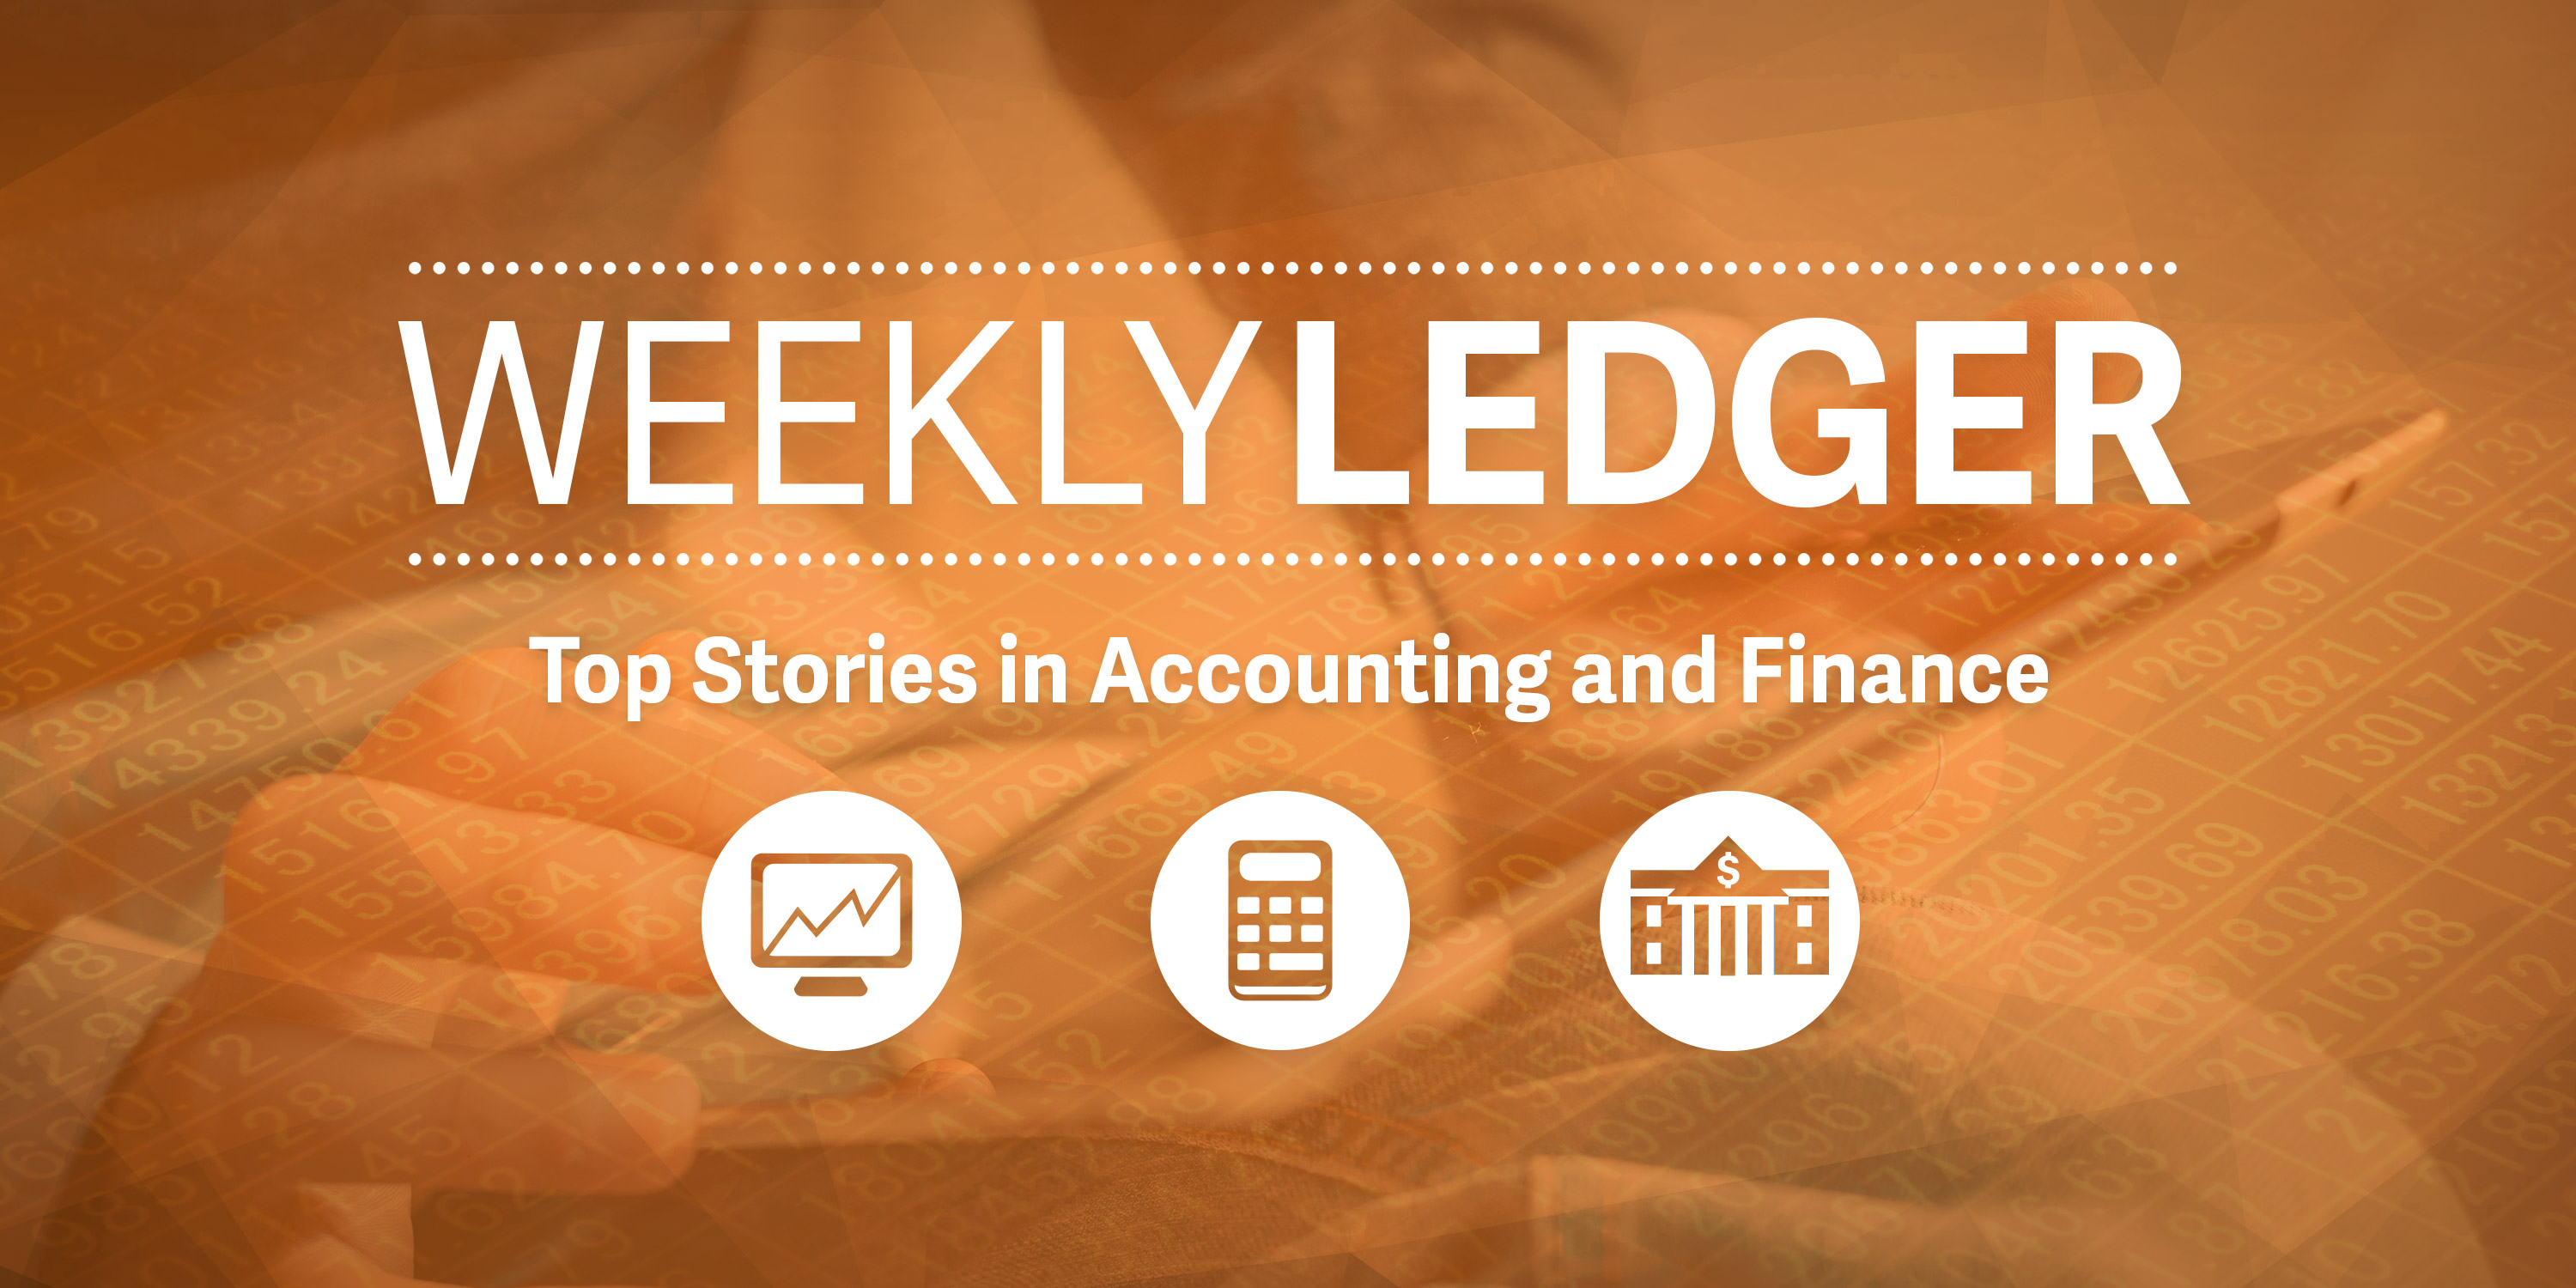 ledger 57 Top Stories in Accounting and Finance